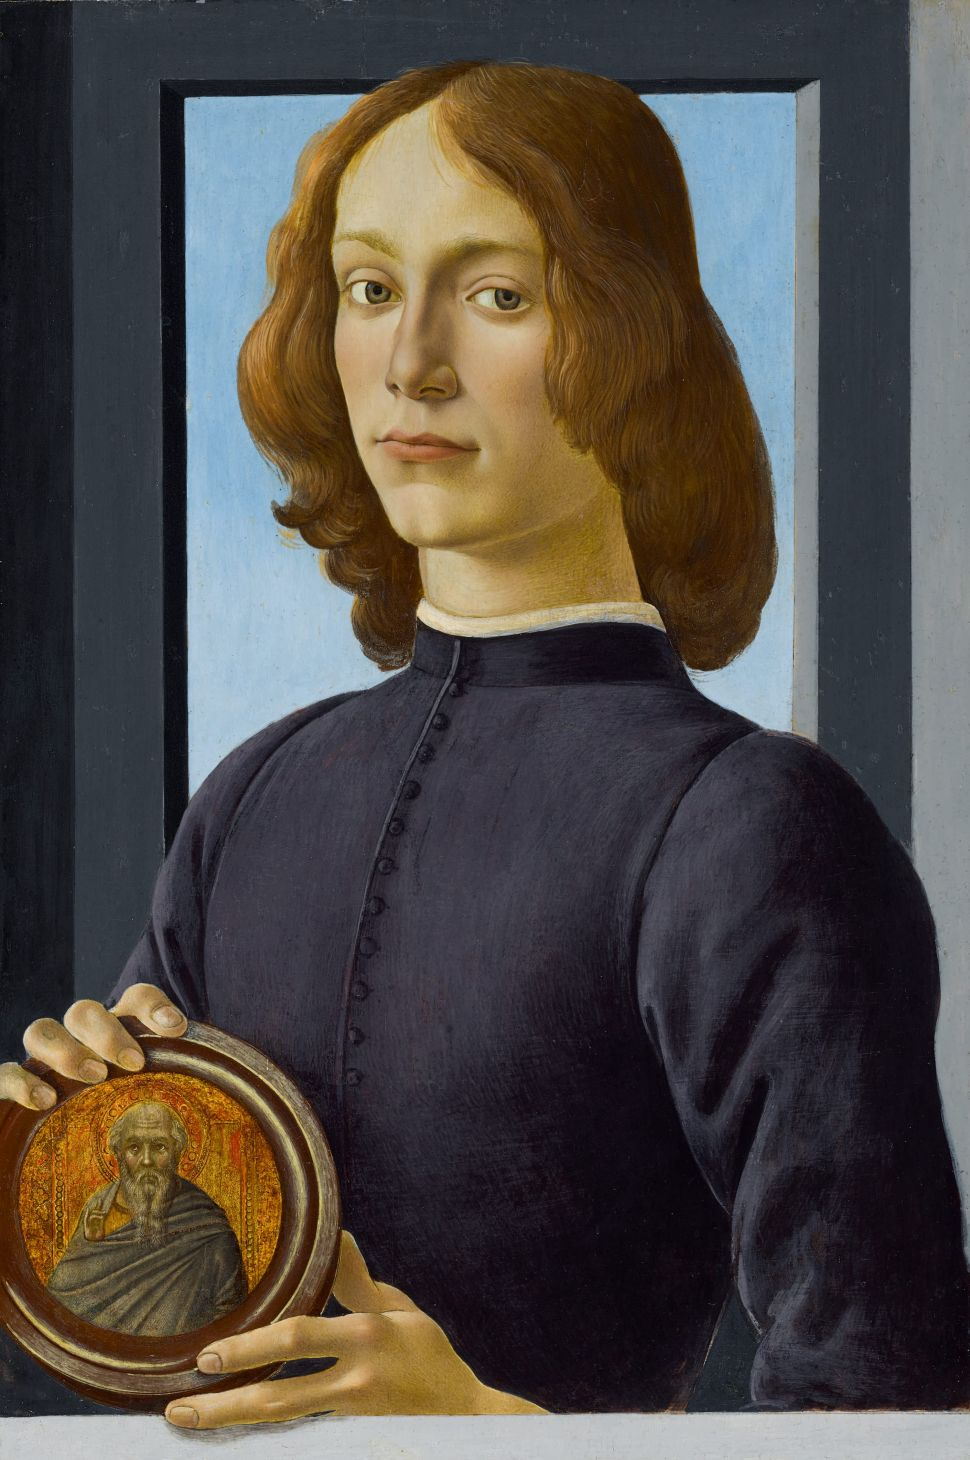 A Highly Sought-After Botticelli Portrait Just Sold for a Record-Breaking $92 Million